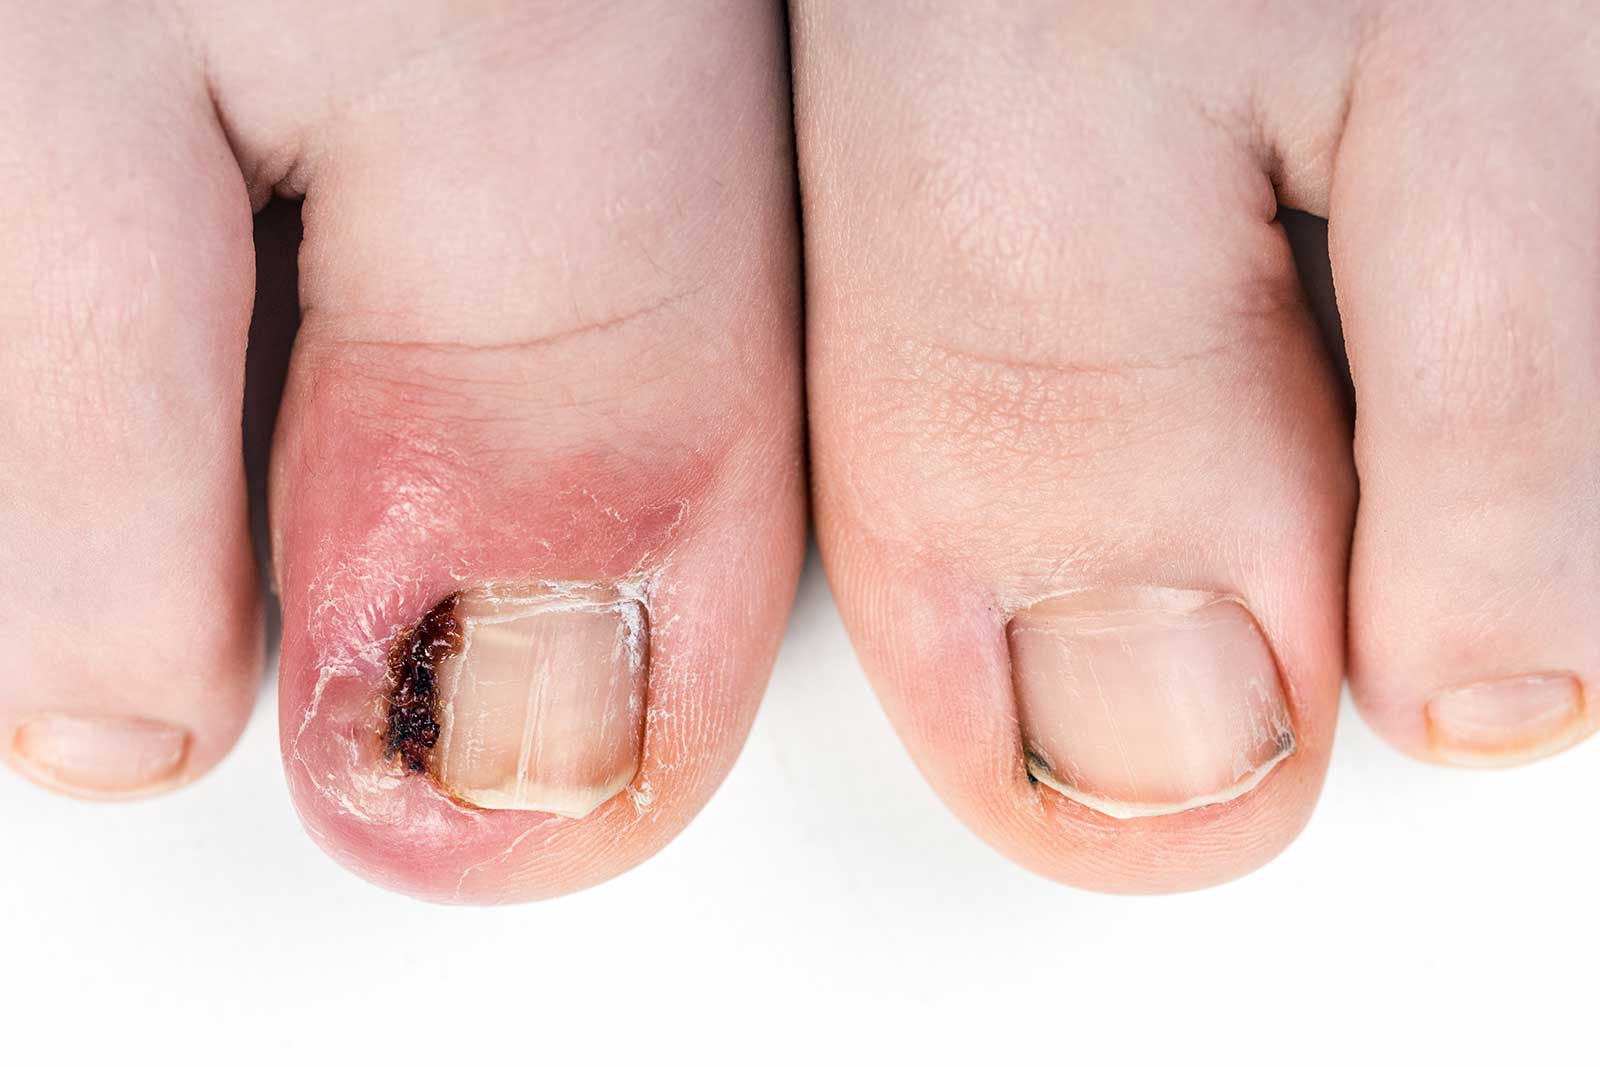 Treatment for ingrowing toenails